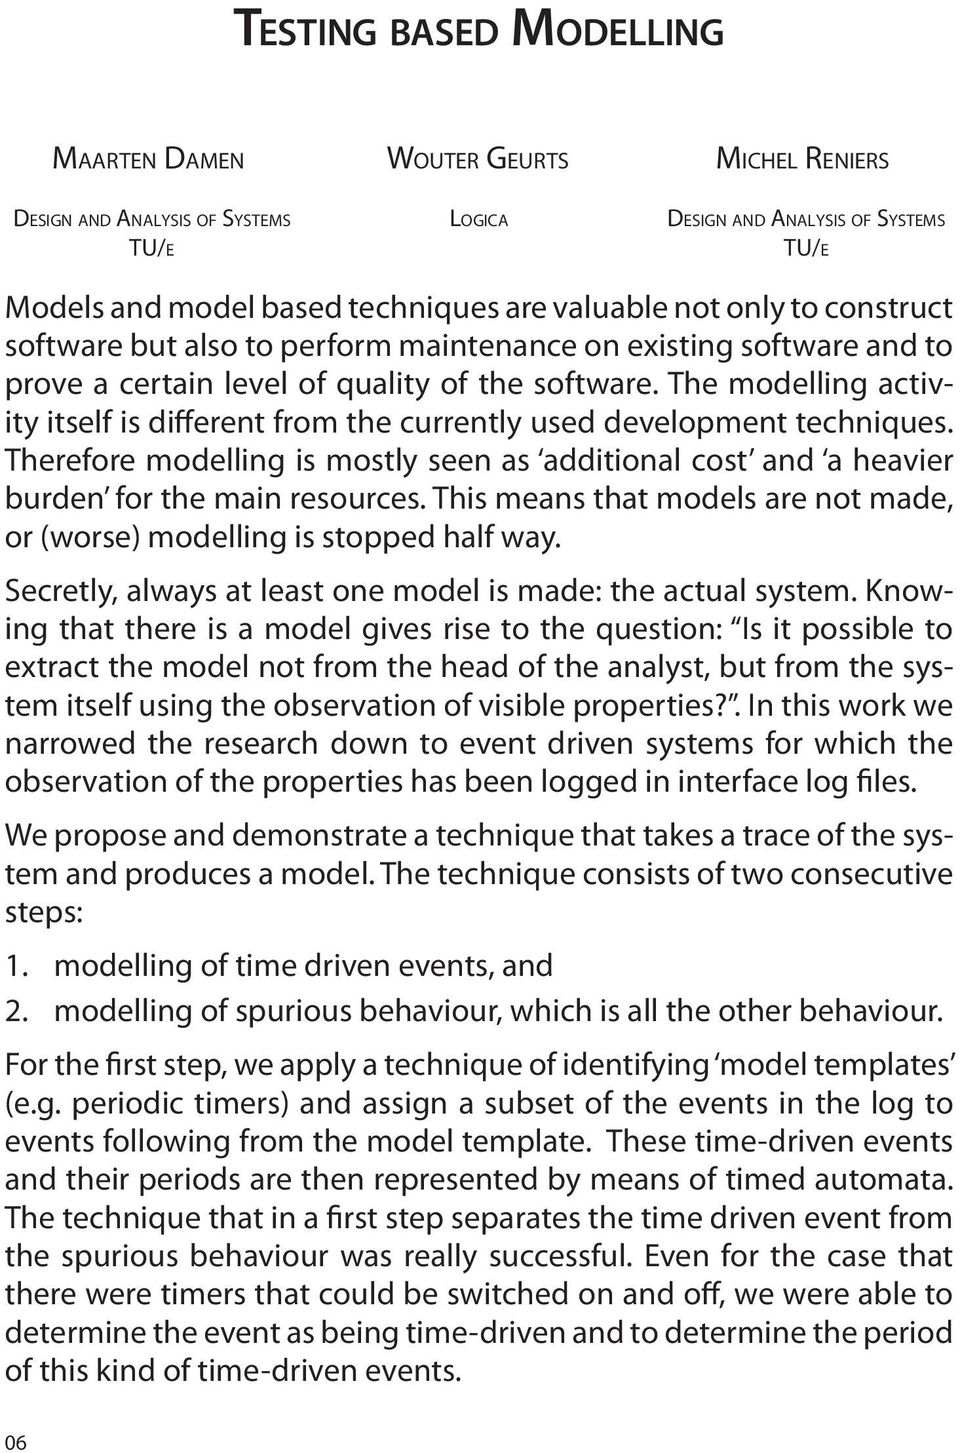 The modelling activity itself is different from the currently used development techniques. Therefore modelling is mostly seen as additional cost and a heavier burden for the main resources.